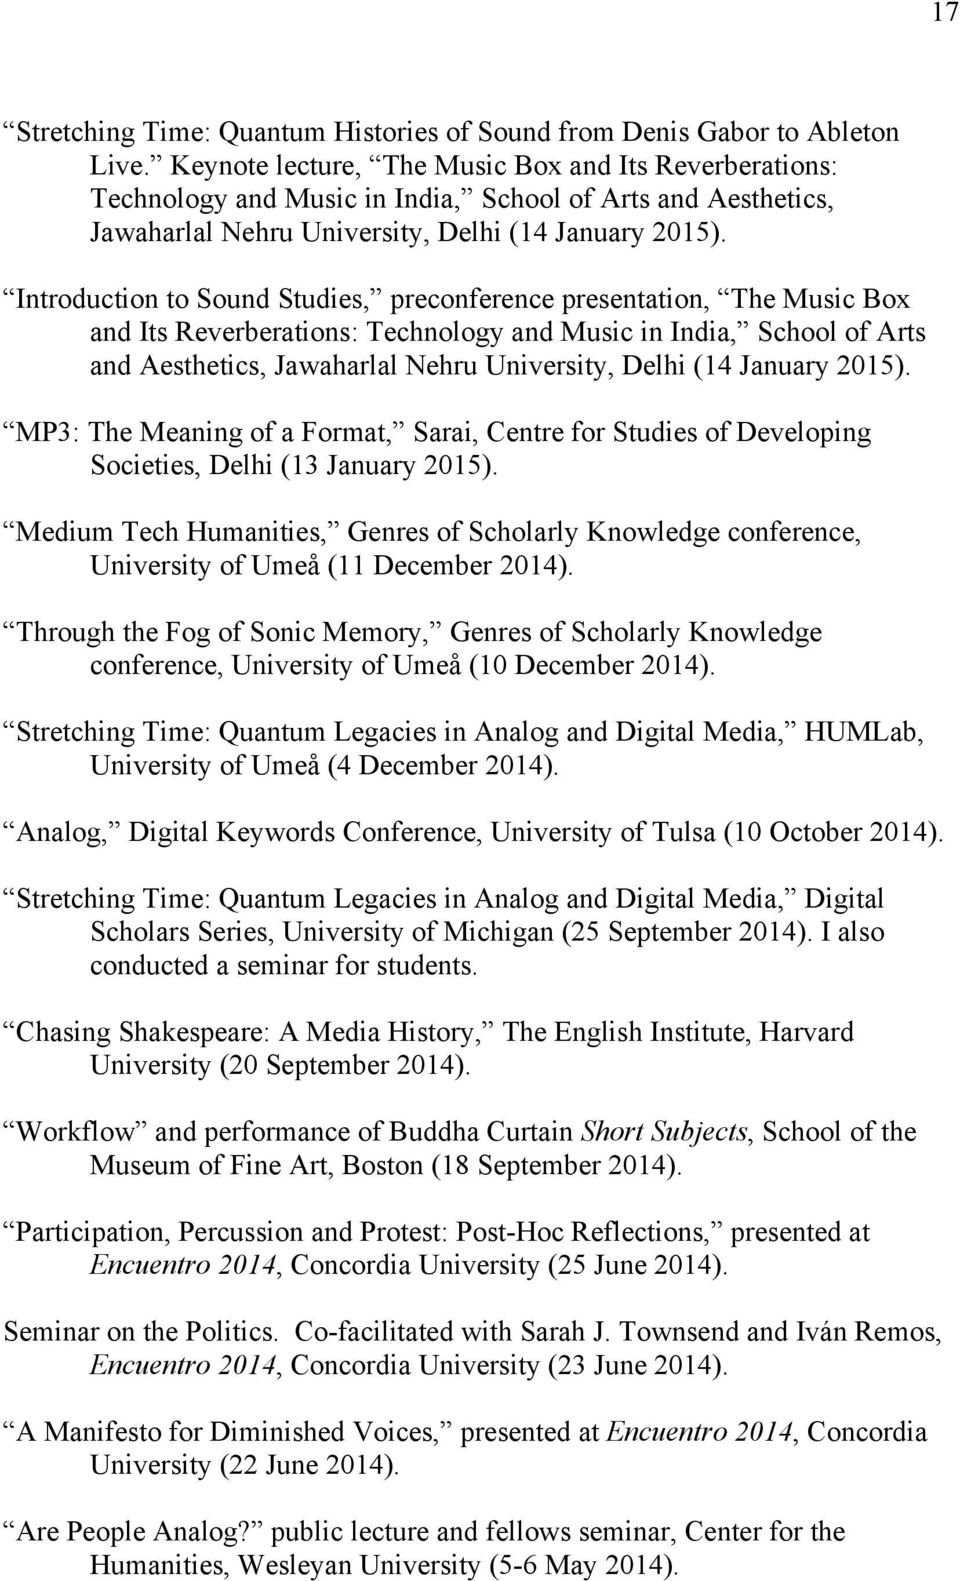 Introduction to Sound Studies, preconference presentation, The Music Box and Its Reverberations: Technology and Music in India, School of Arts and Aesthetics, Jawaharlal Nehru University, Delhi (14